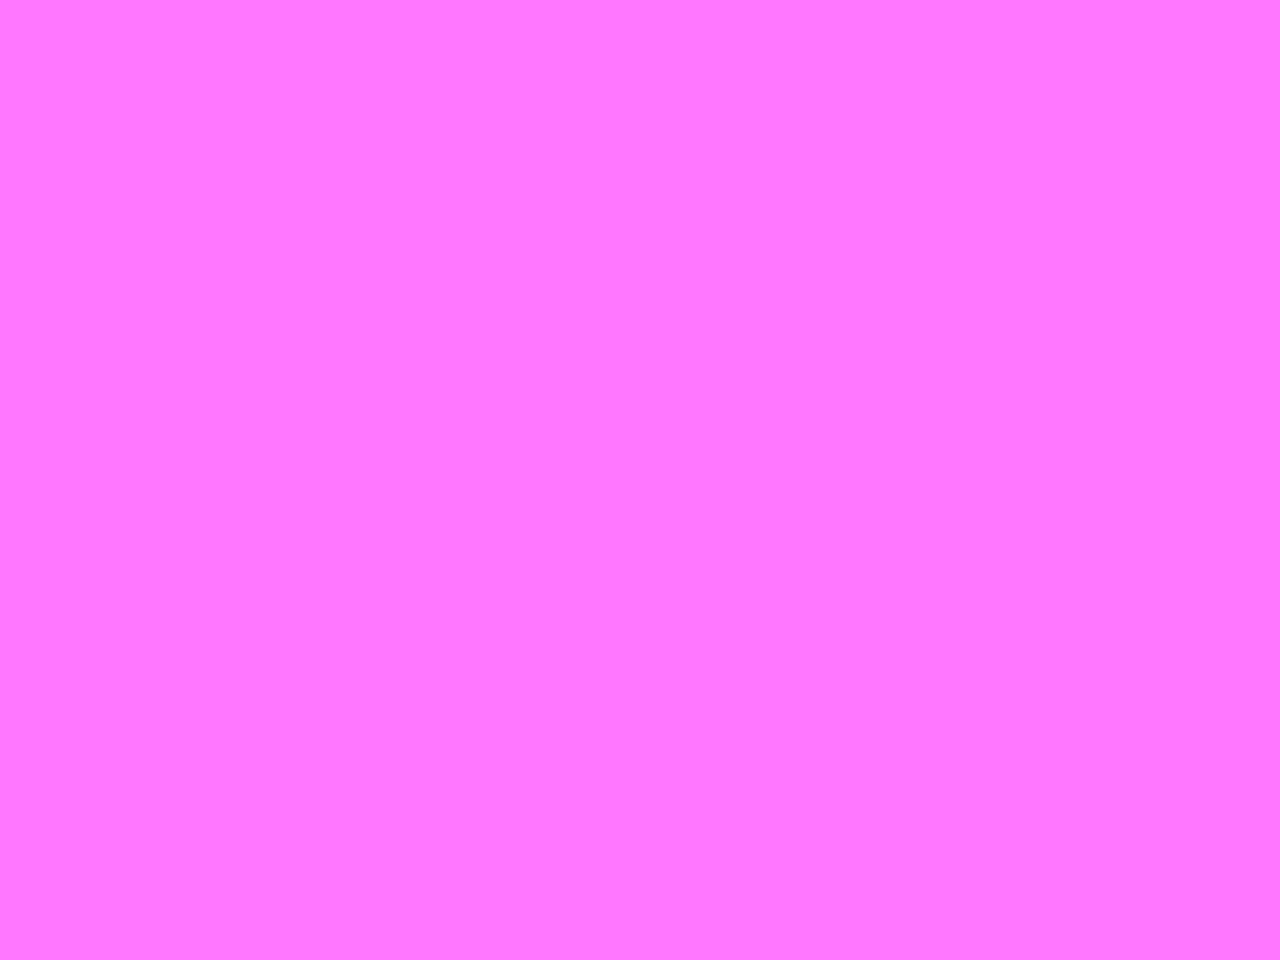 1280x960 Fuchsia Pink Solid Color Background